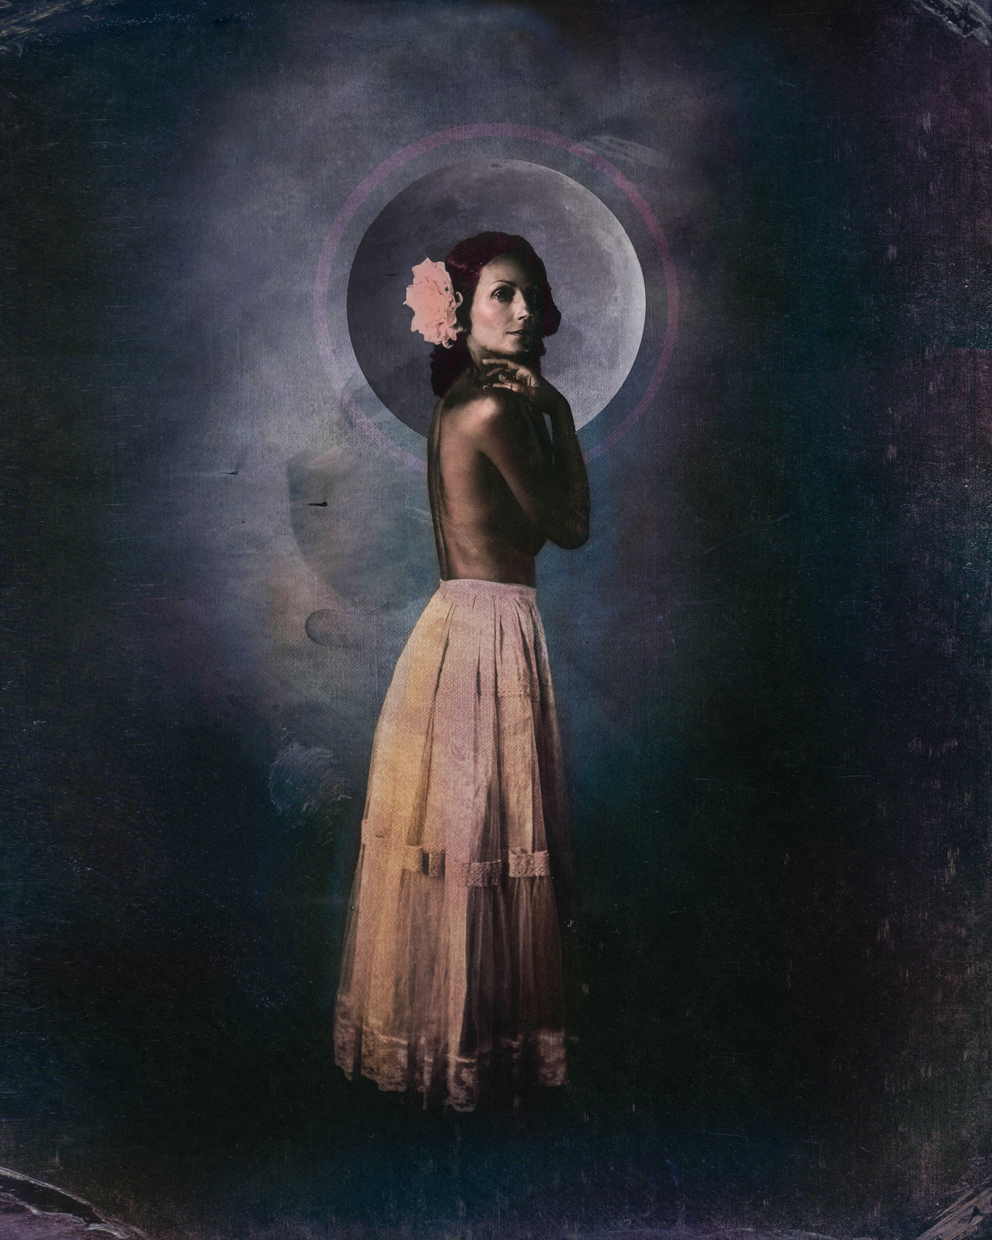 Our Lady of the Blue Moon © Laura Burlton